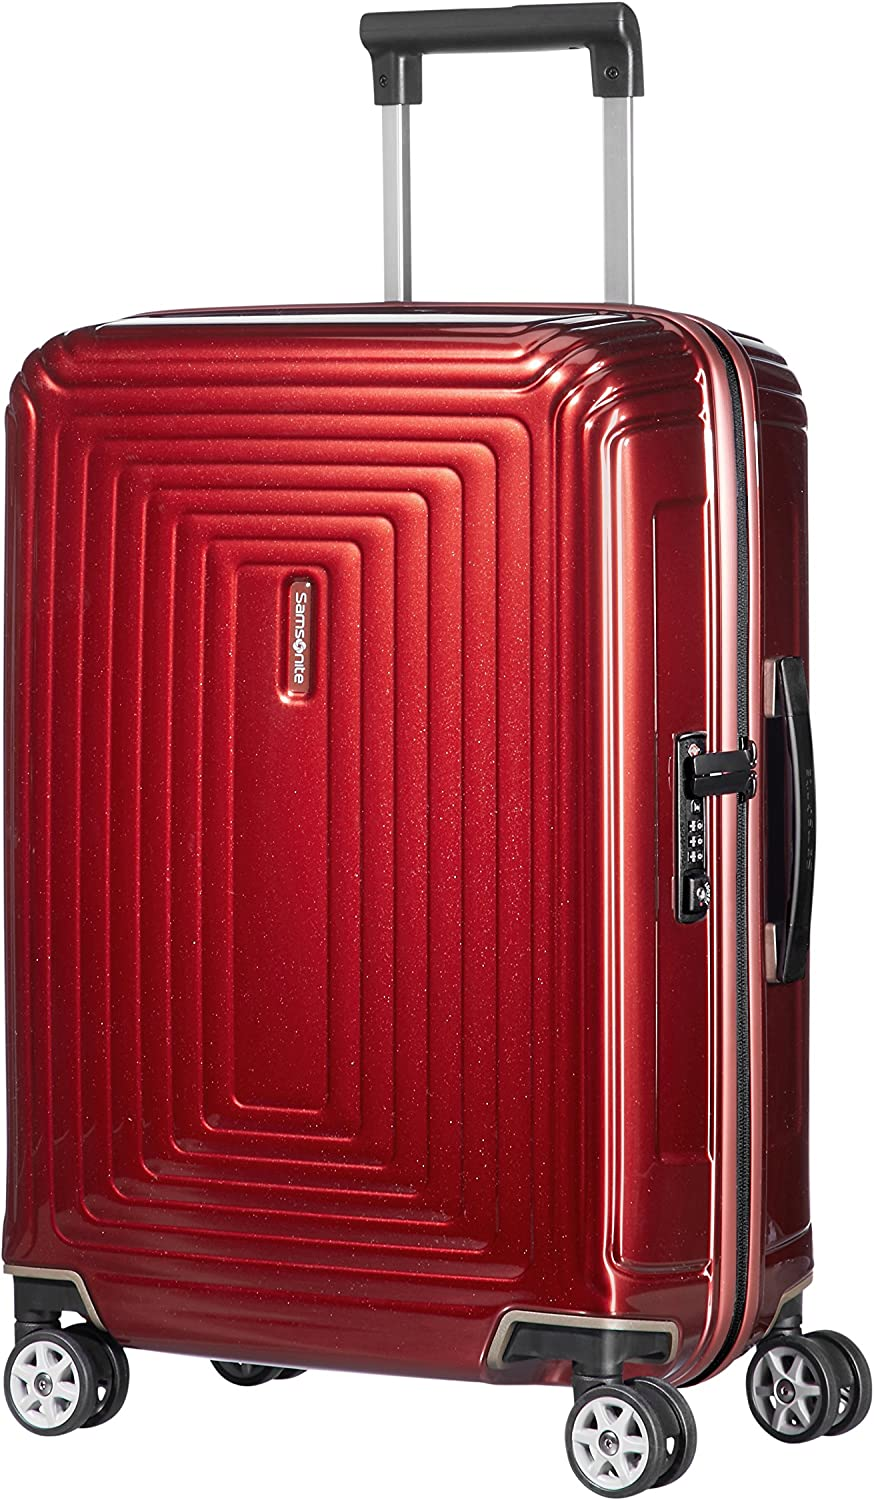 Samsonite Neopulse - Spinner S (Ancho: 23 cm) Equipaje de Mano, 55 cm, 44 L, Rojo (Metallic Red)